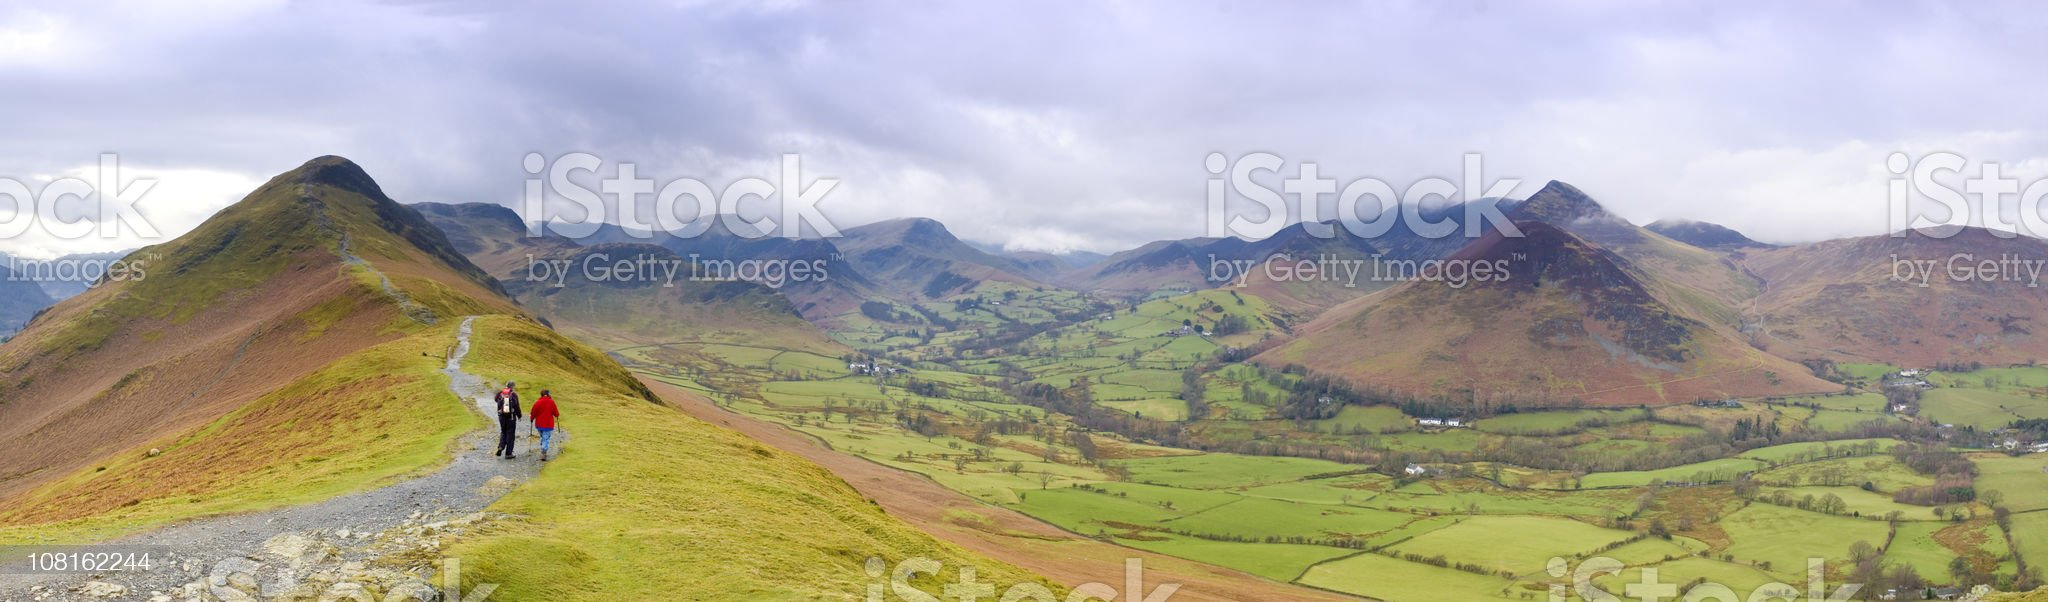 Young Couple Walking in Mountains royalty-free stock photo